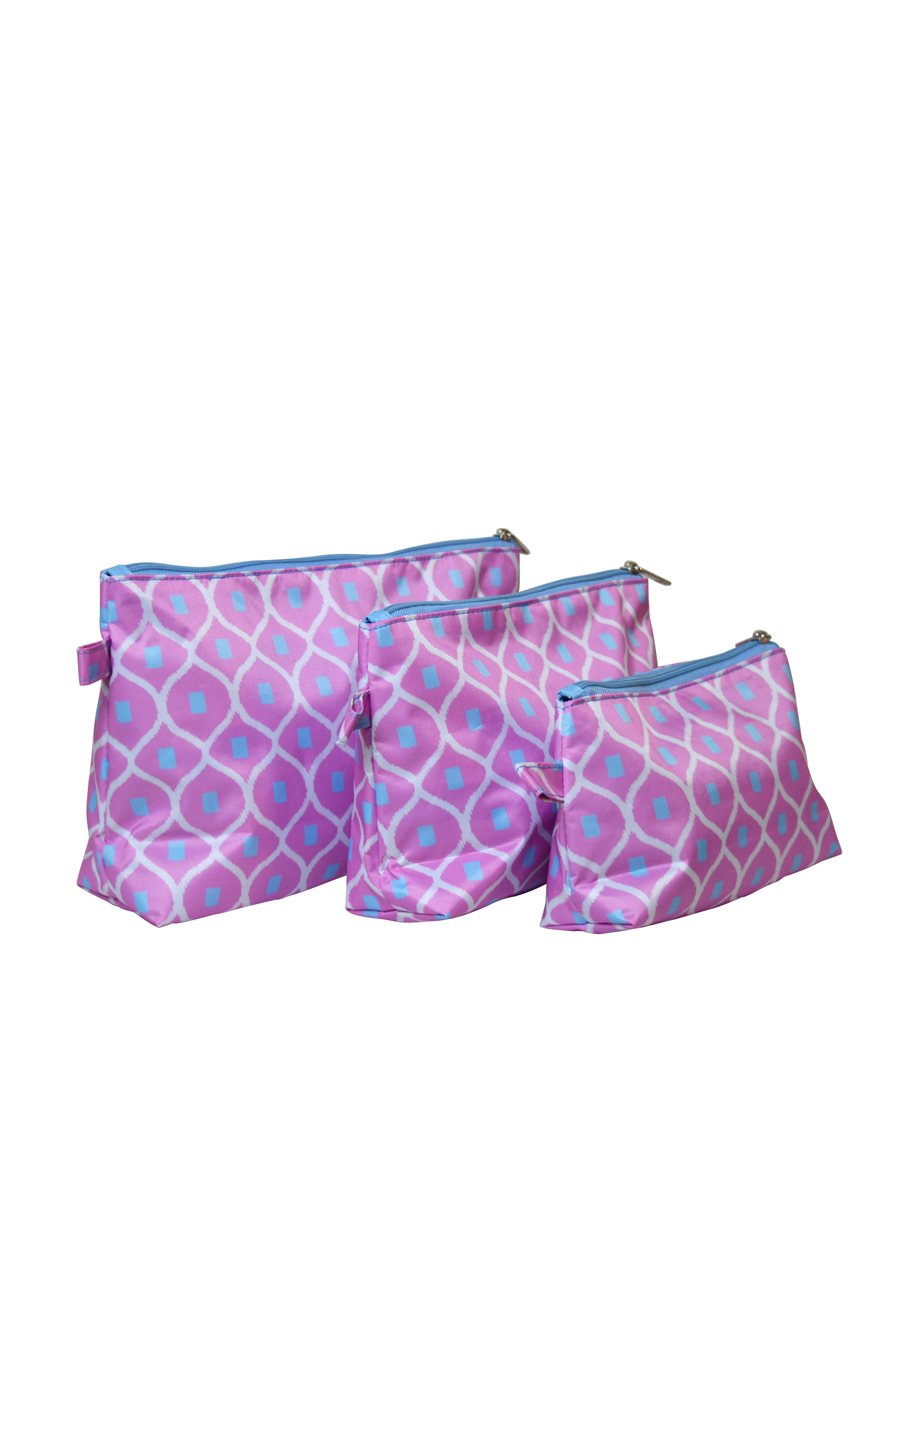 Good Catch 3 Piece Cosmetic Bag Set - FINAL SALE